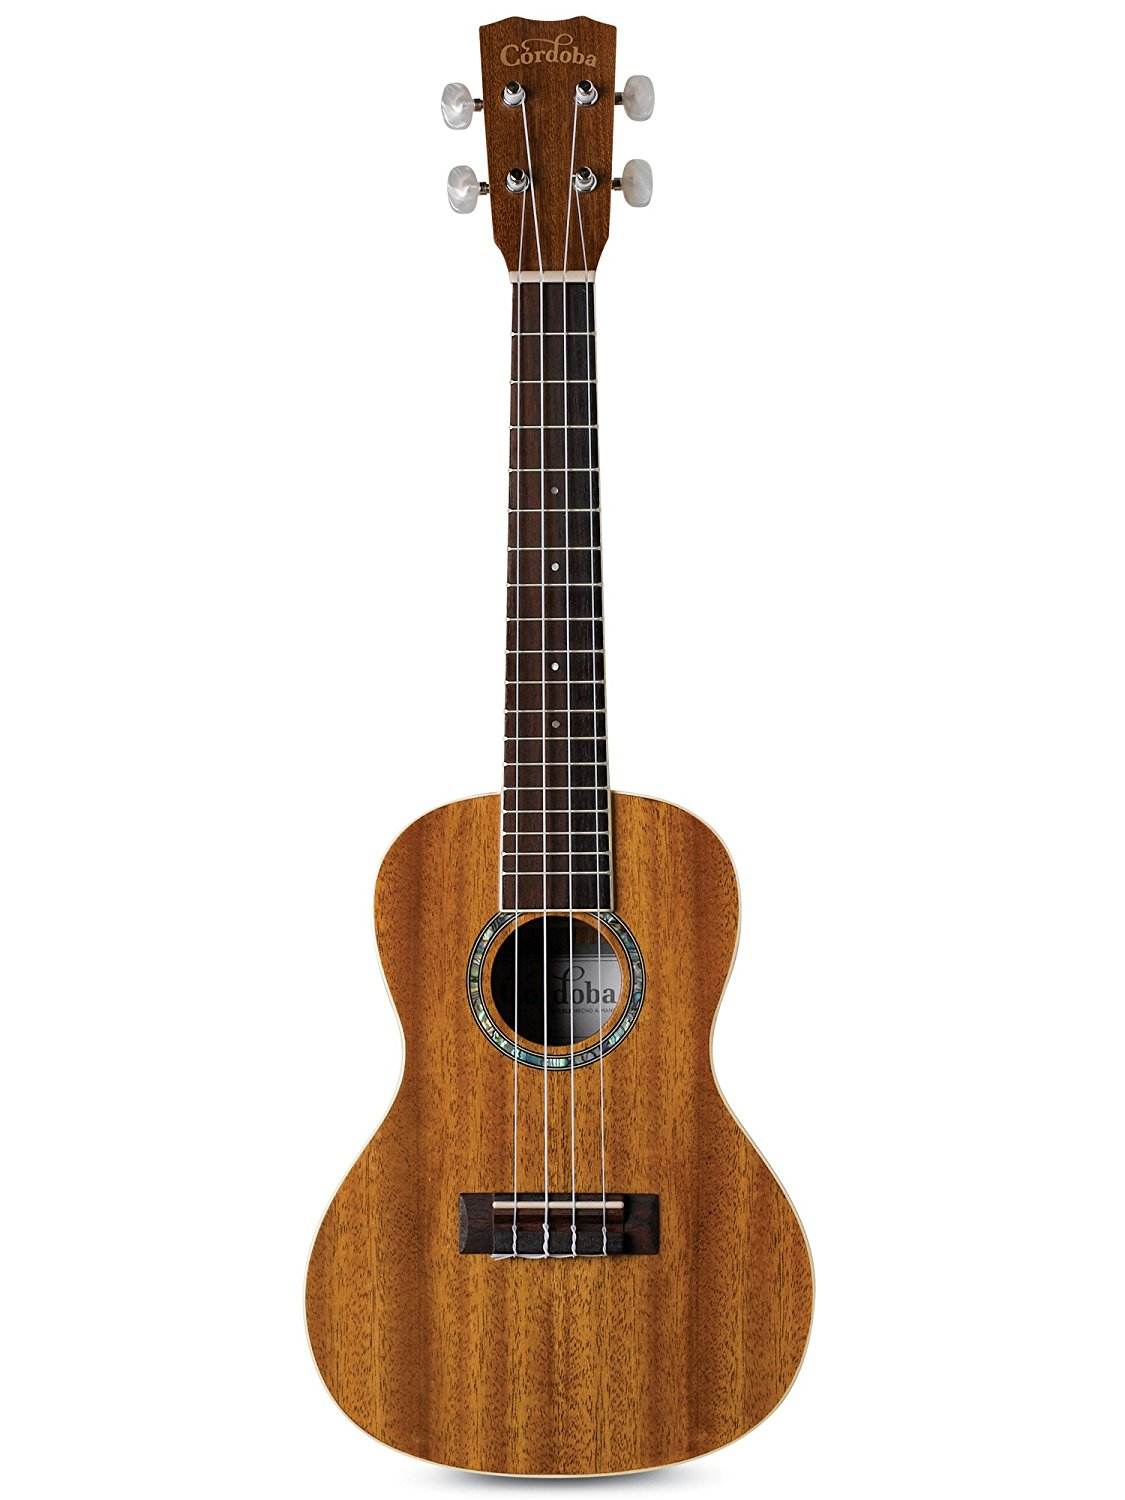 Cordoba Guitars 15CM Concert Ukulele – Available in 4 Styles